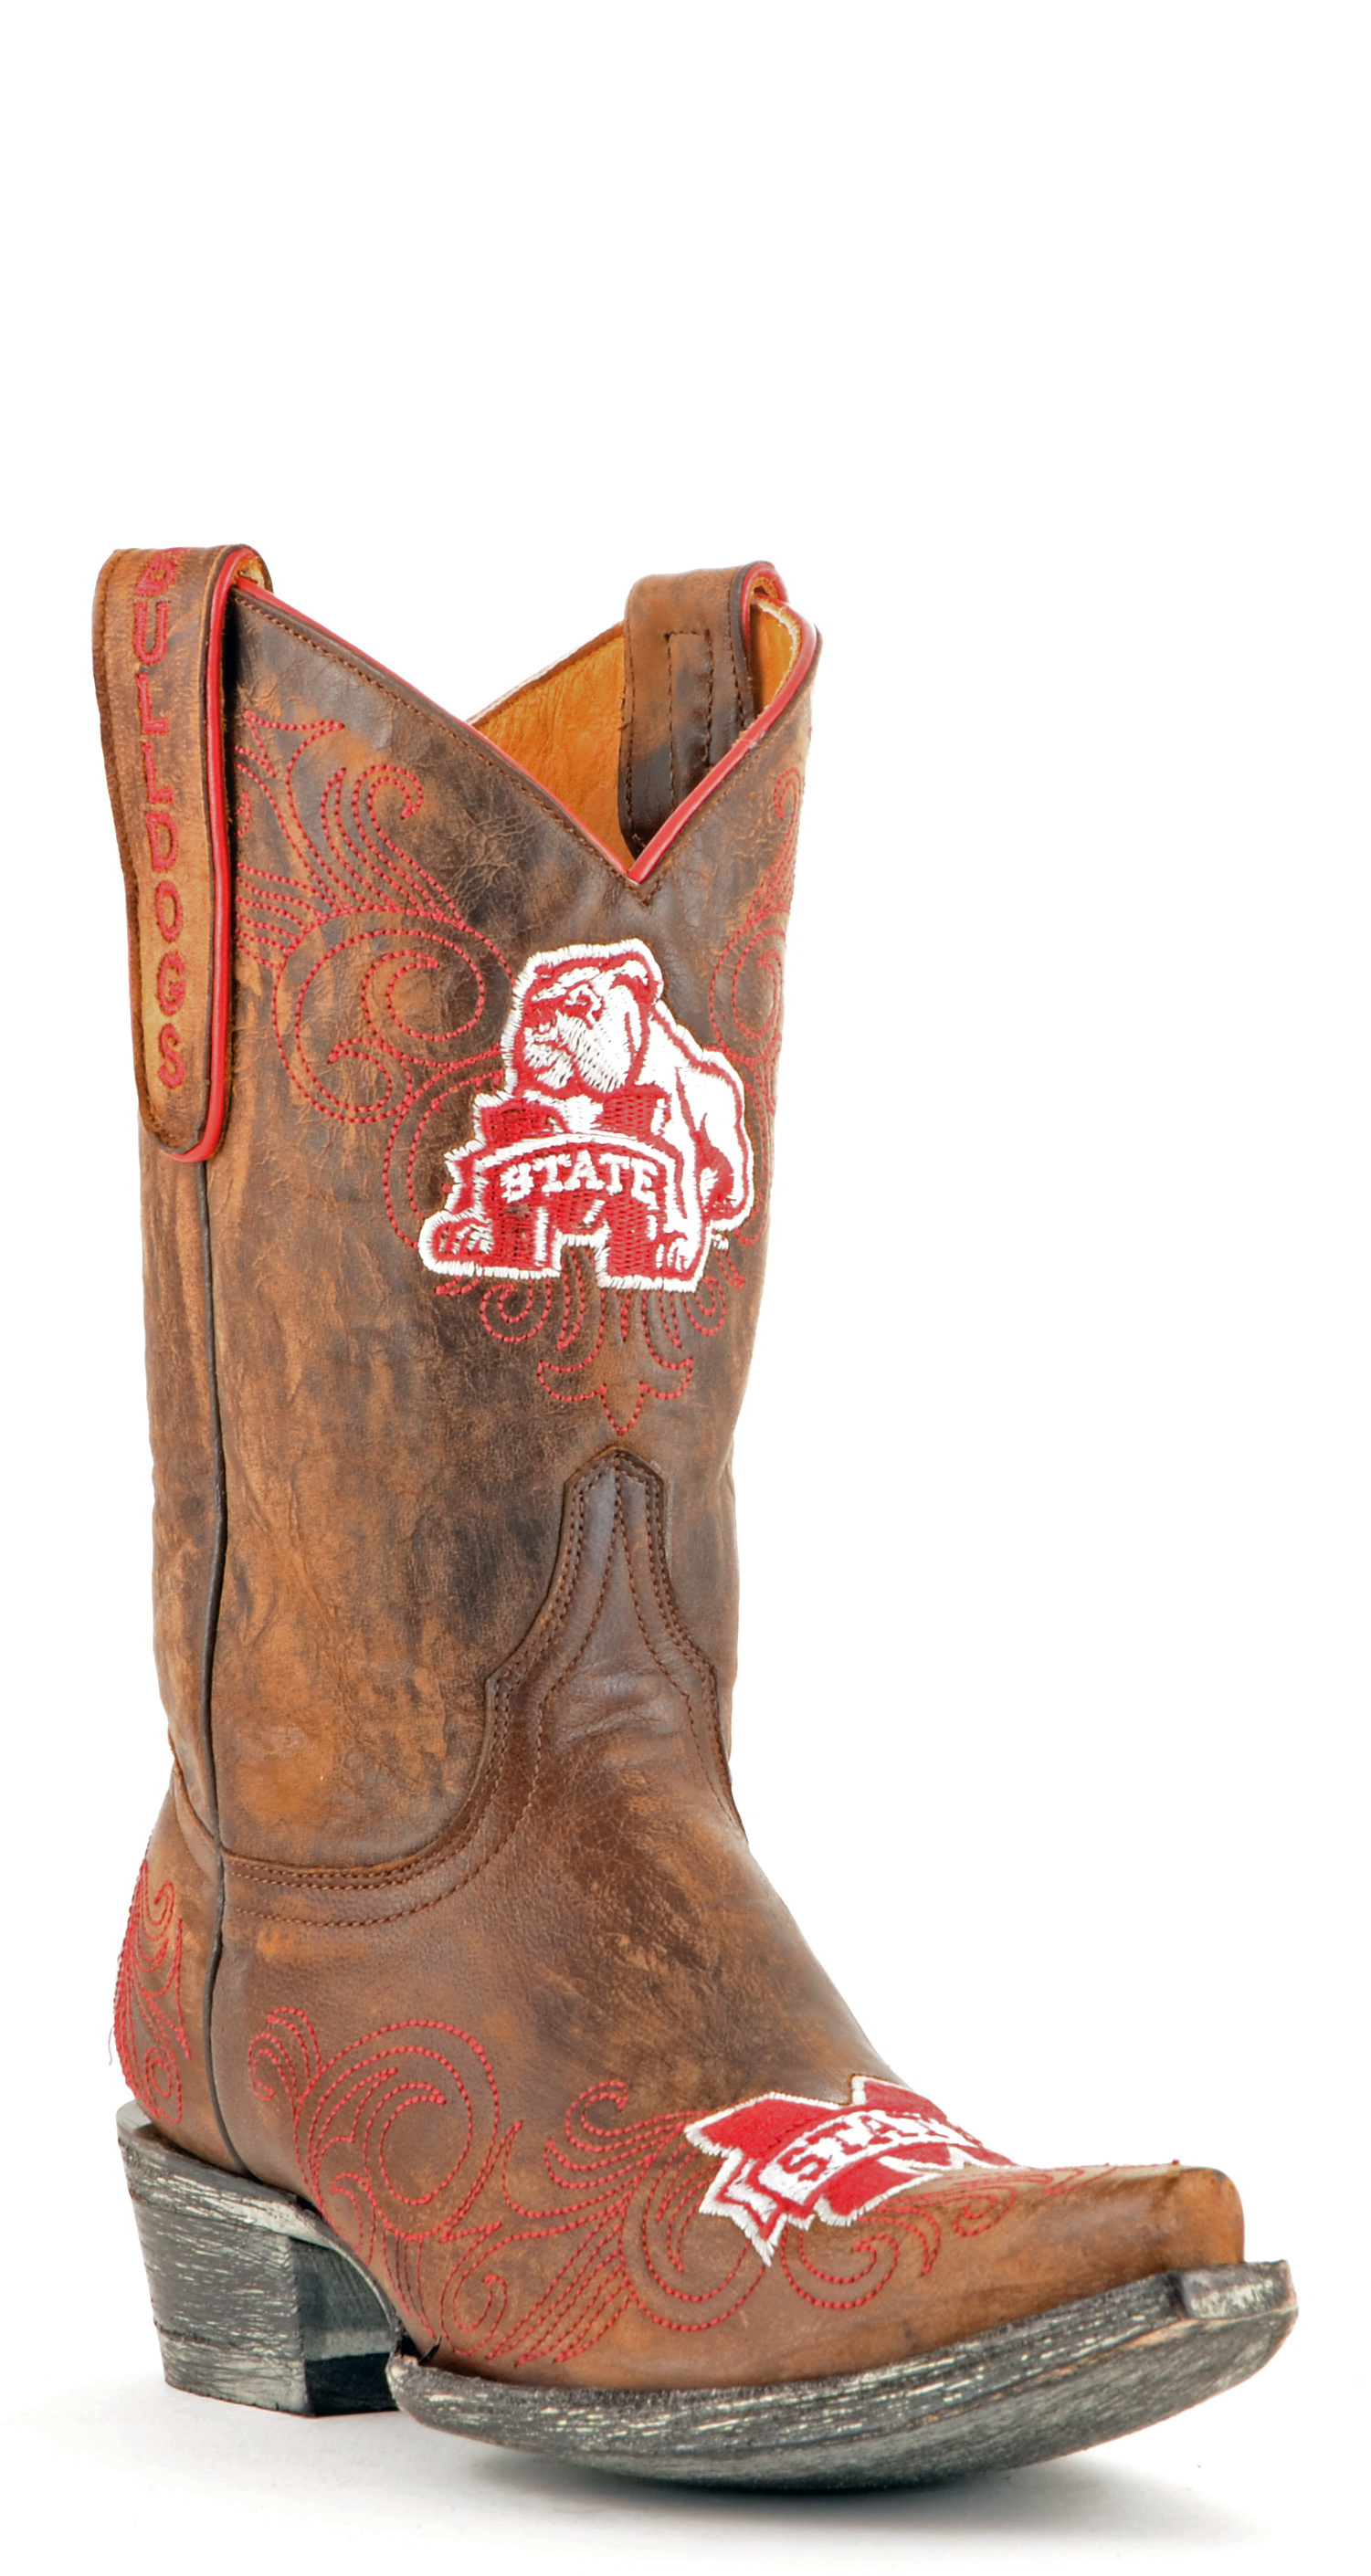 "Gameday Boots Women's 10"" Short Leather Mississippi State Cowboy Boots by GameDay Boots"